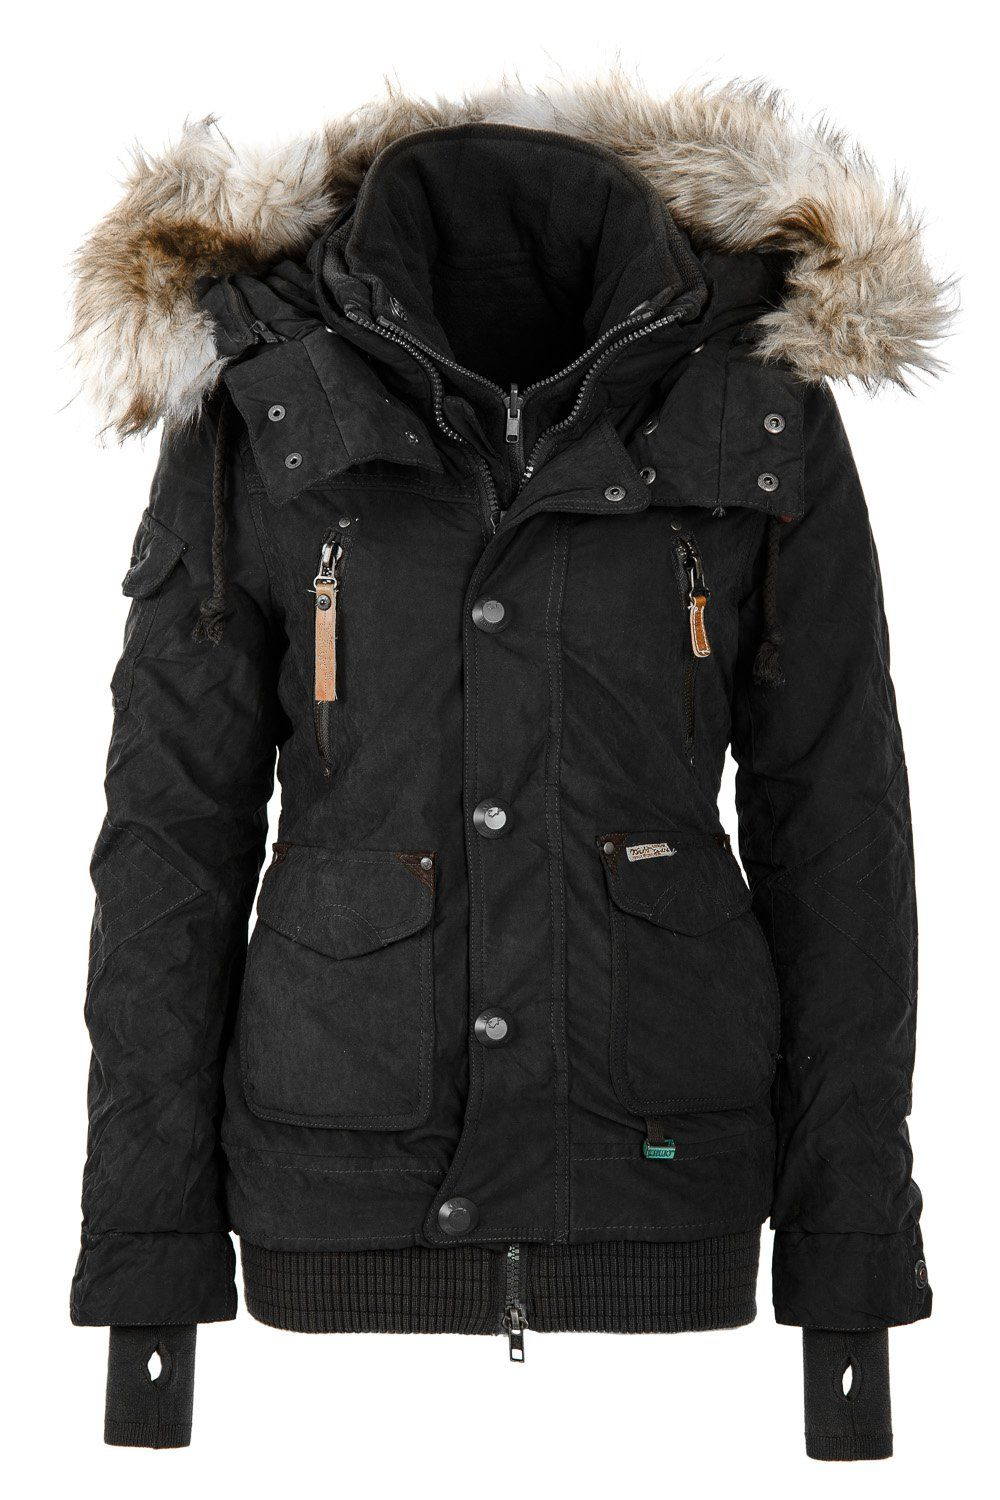 Best Womens Parka Coat - JacketIn